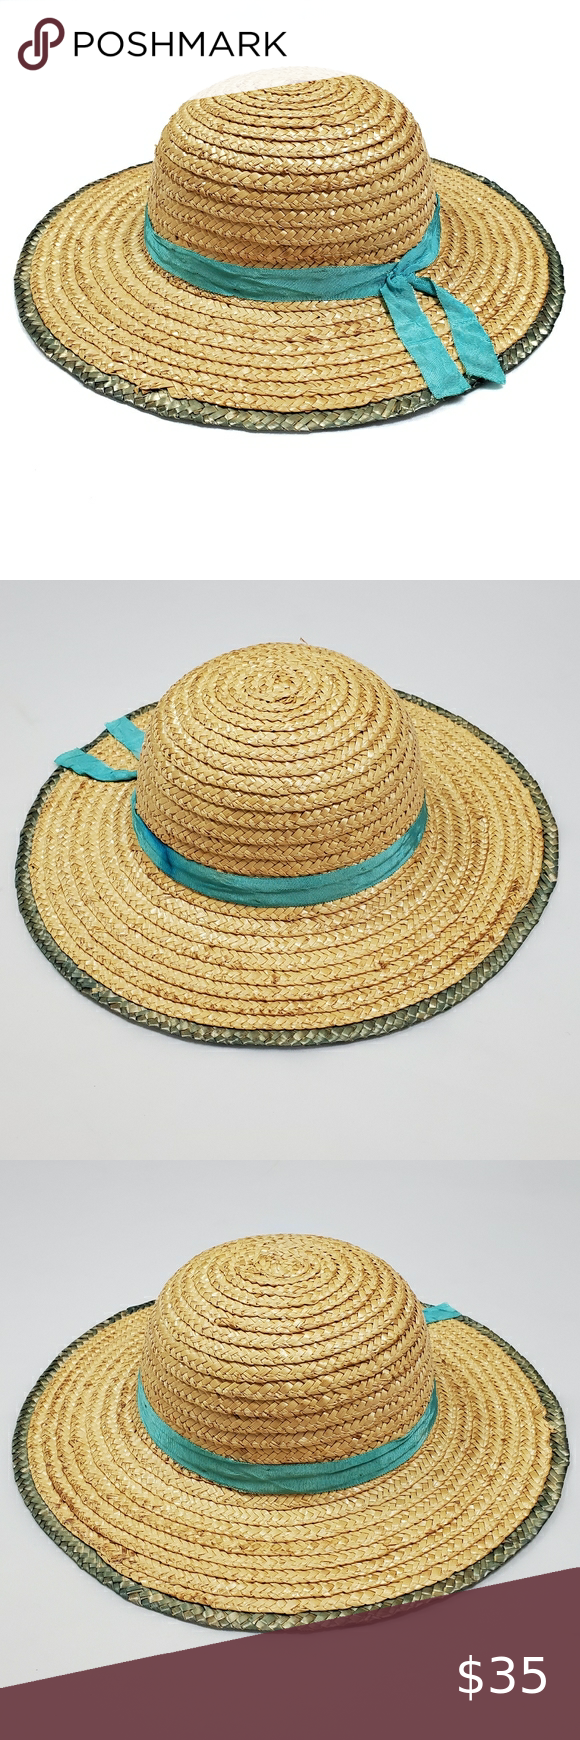 Vintage Chinese Straw Sun Hat Tan Blue Wide Brim Sun Hats Sun Hats For Women Large Leather Tote Bag